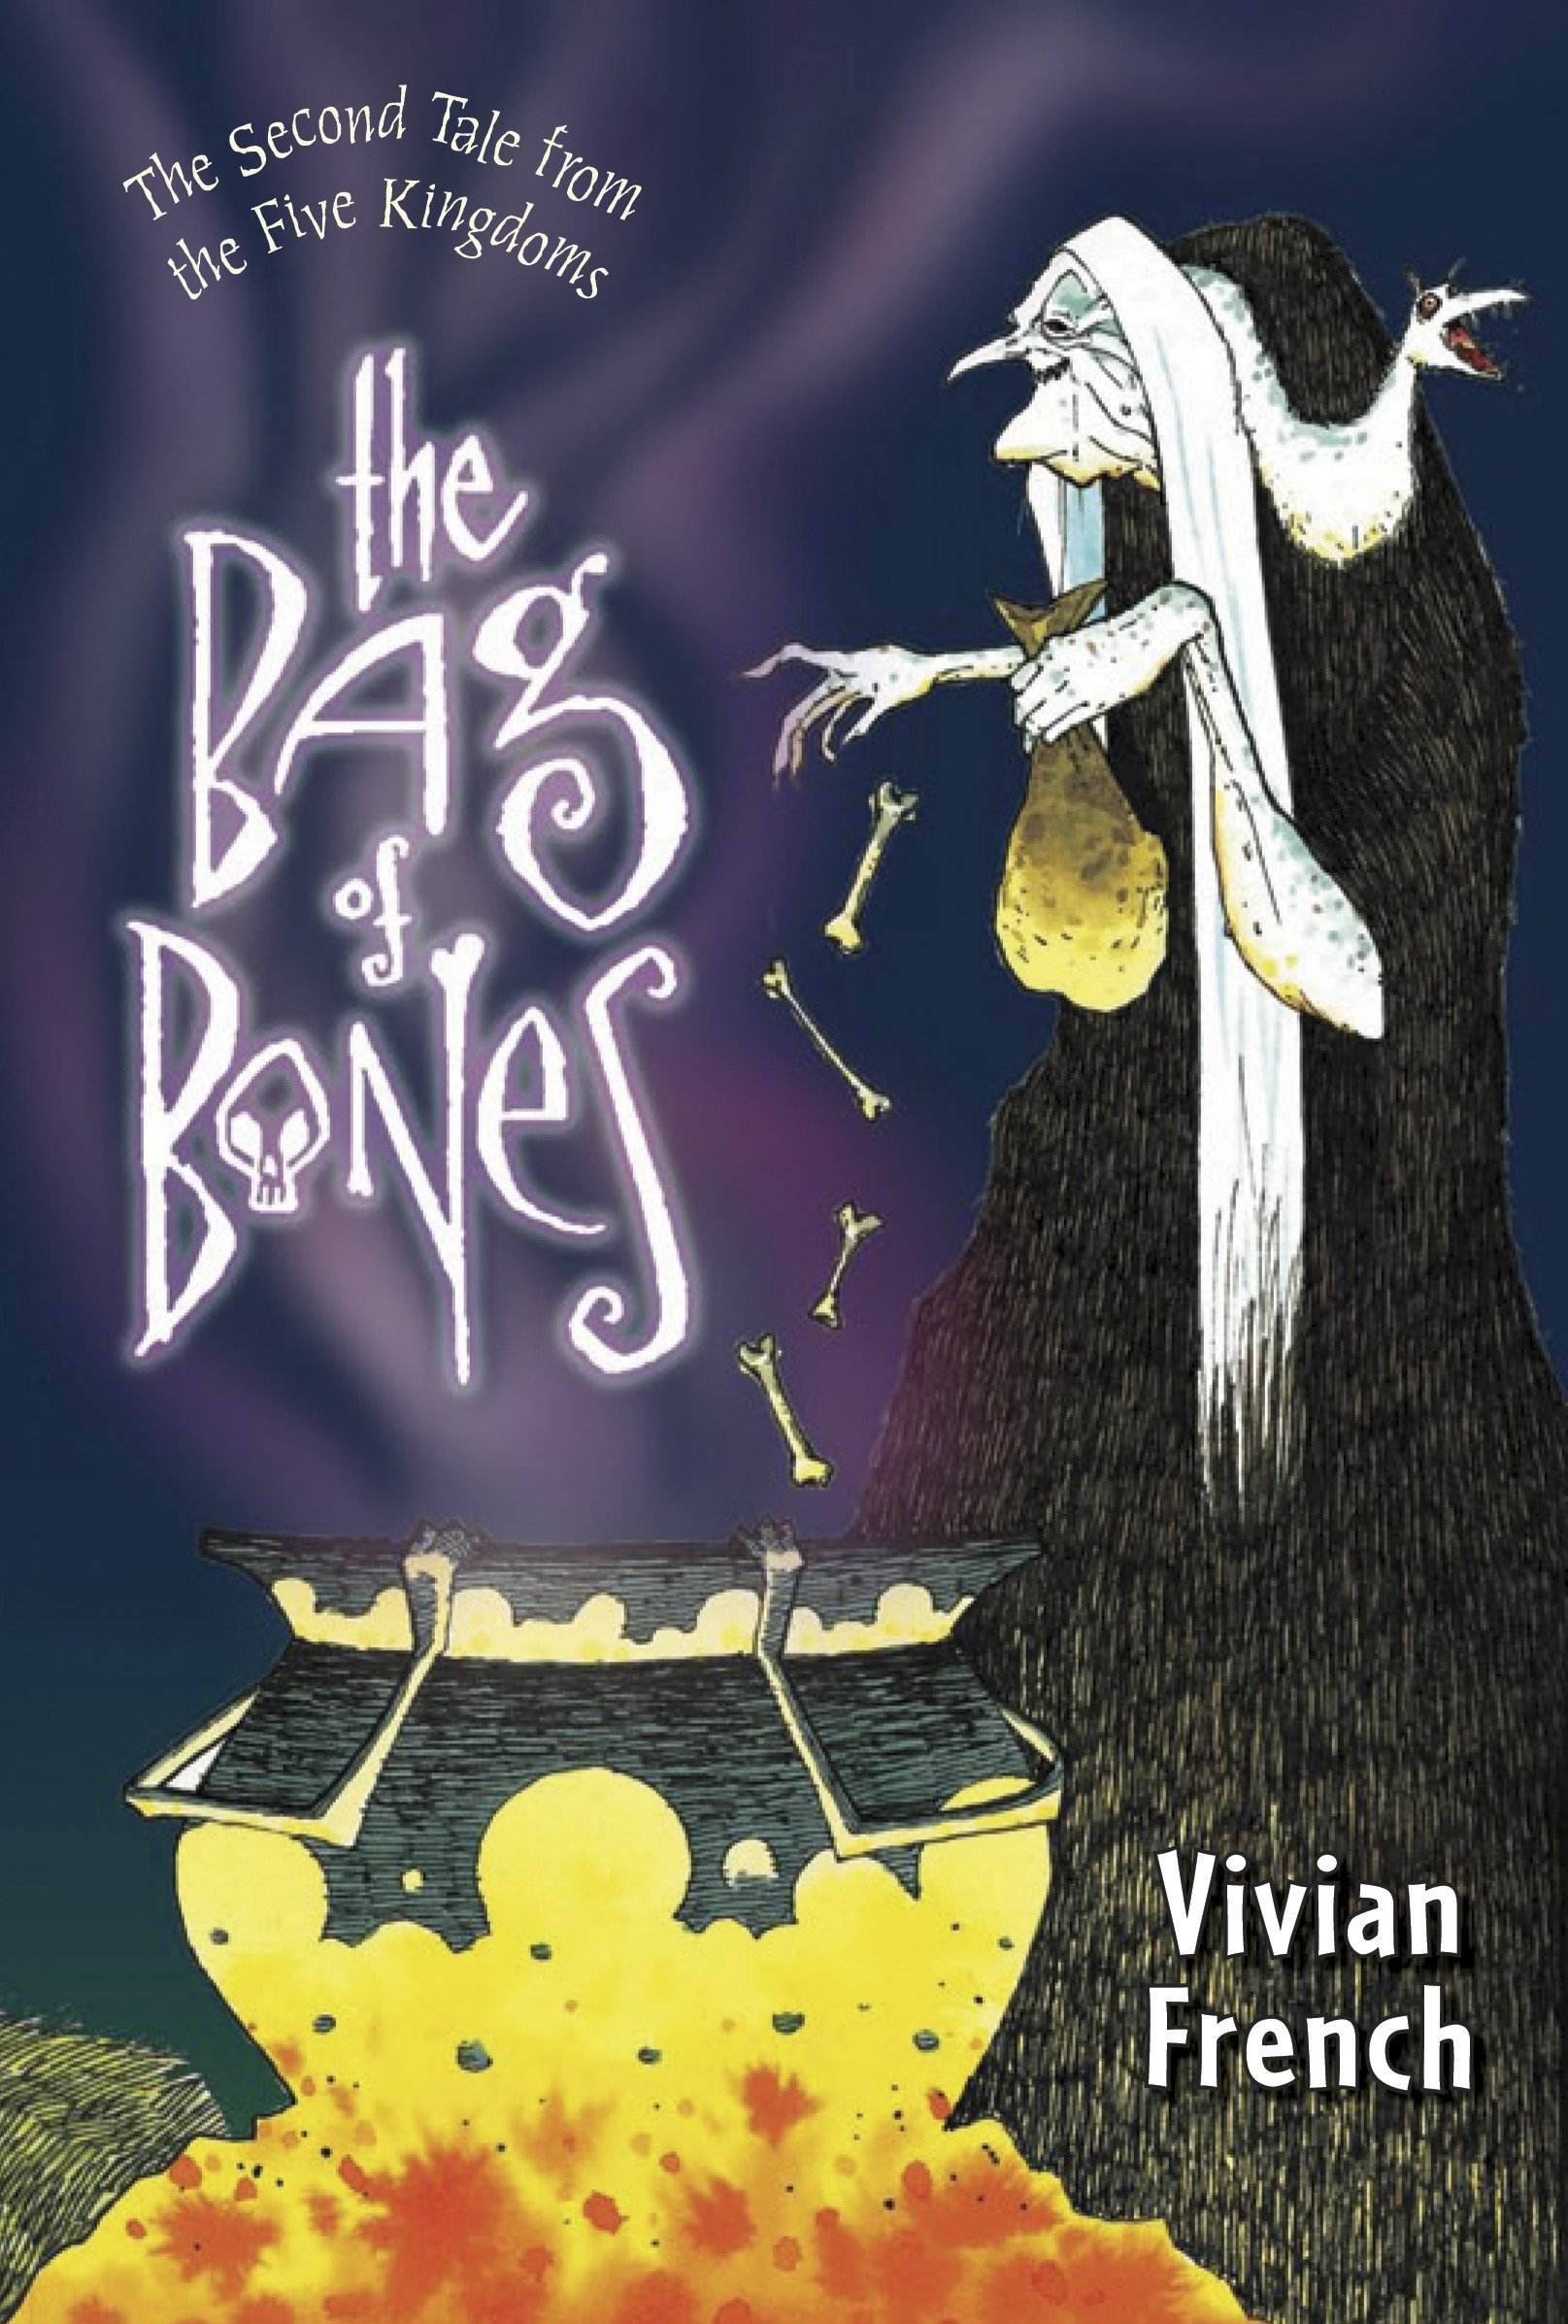 Download The Bag of Bones: The Second Tale from the Five Kingdoms (Tales from the Five Kingdoms) ebook